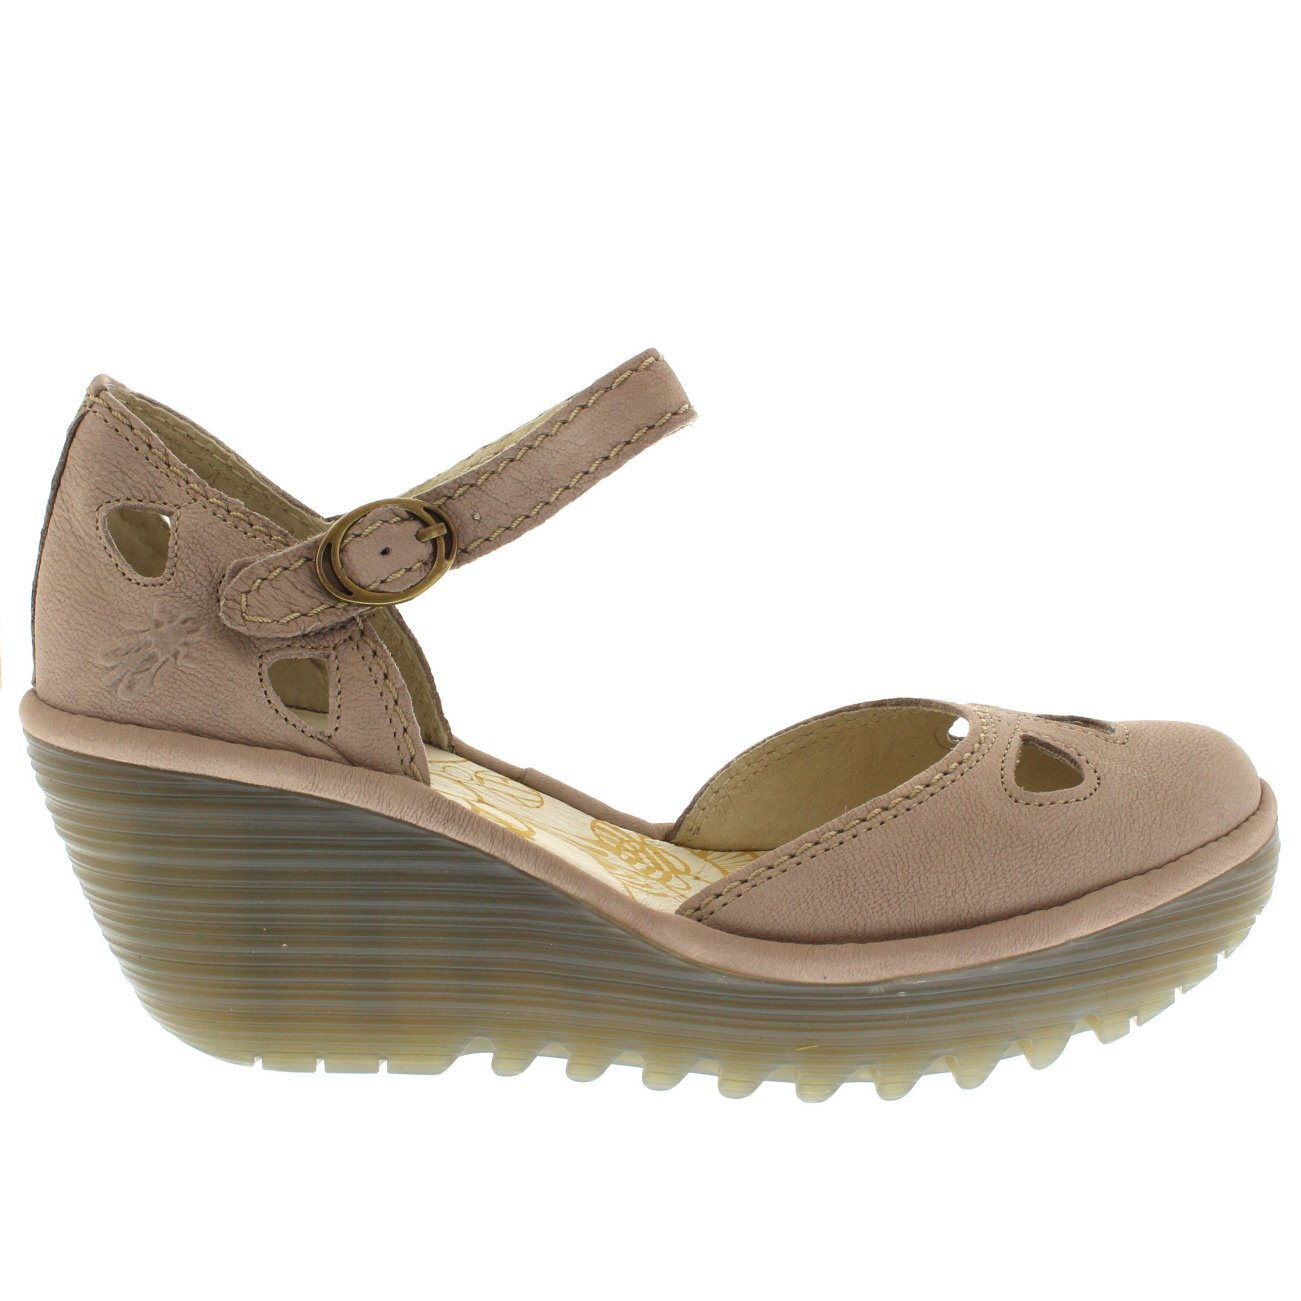 FLY London Womens Yuna Cupido Leather Sandals Summer Shoes Wedge Heel - Concrete - 6 by FLY London (Image #4)